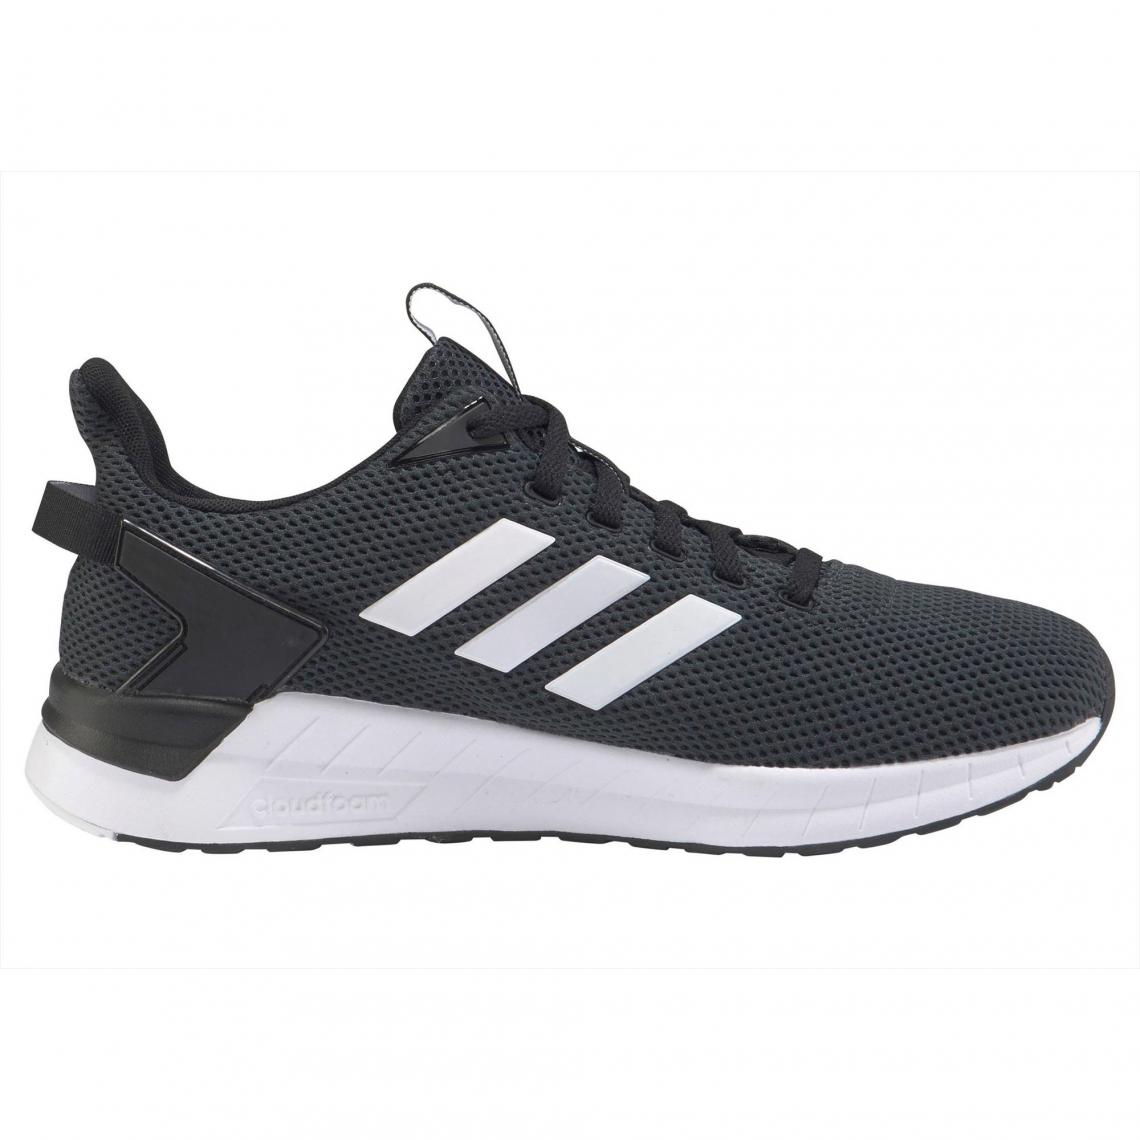 promo code buy online new product Chaussures de running homme Questar Ride adidas - Gris ...